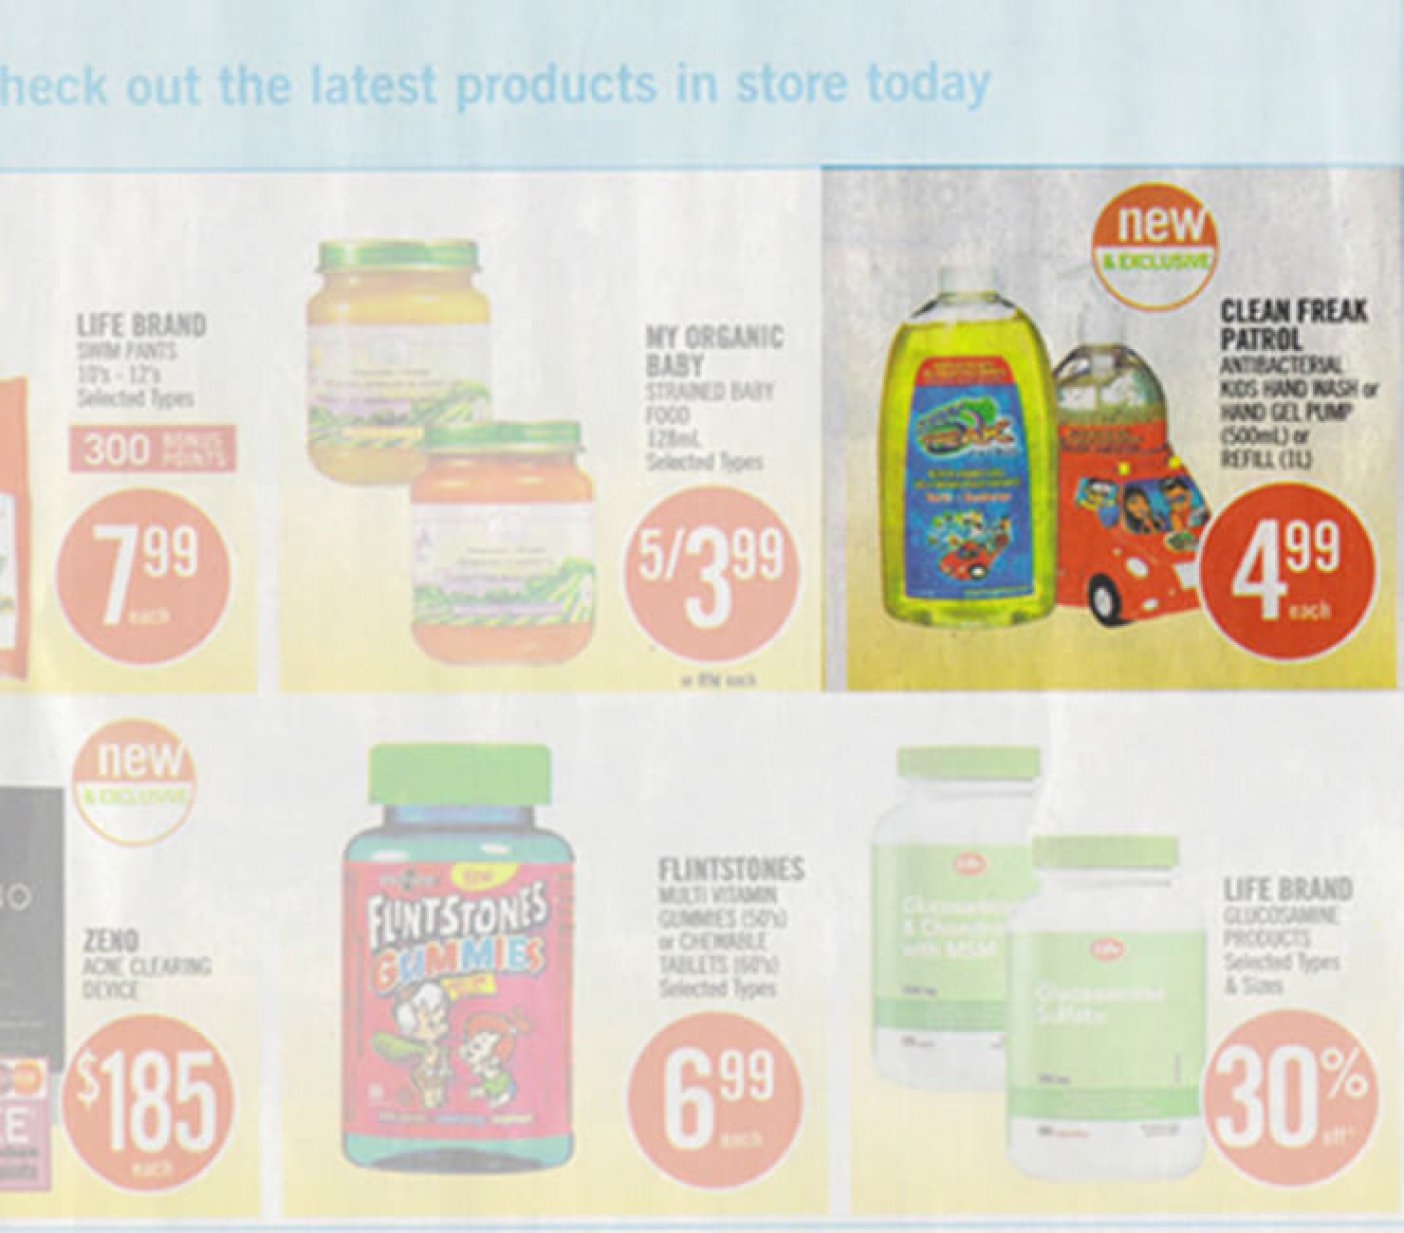 Clean Freak Patrol in Shoppers Drug Mart Flyer - Giant Step